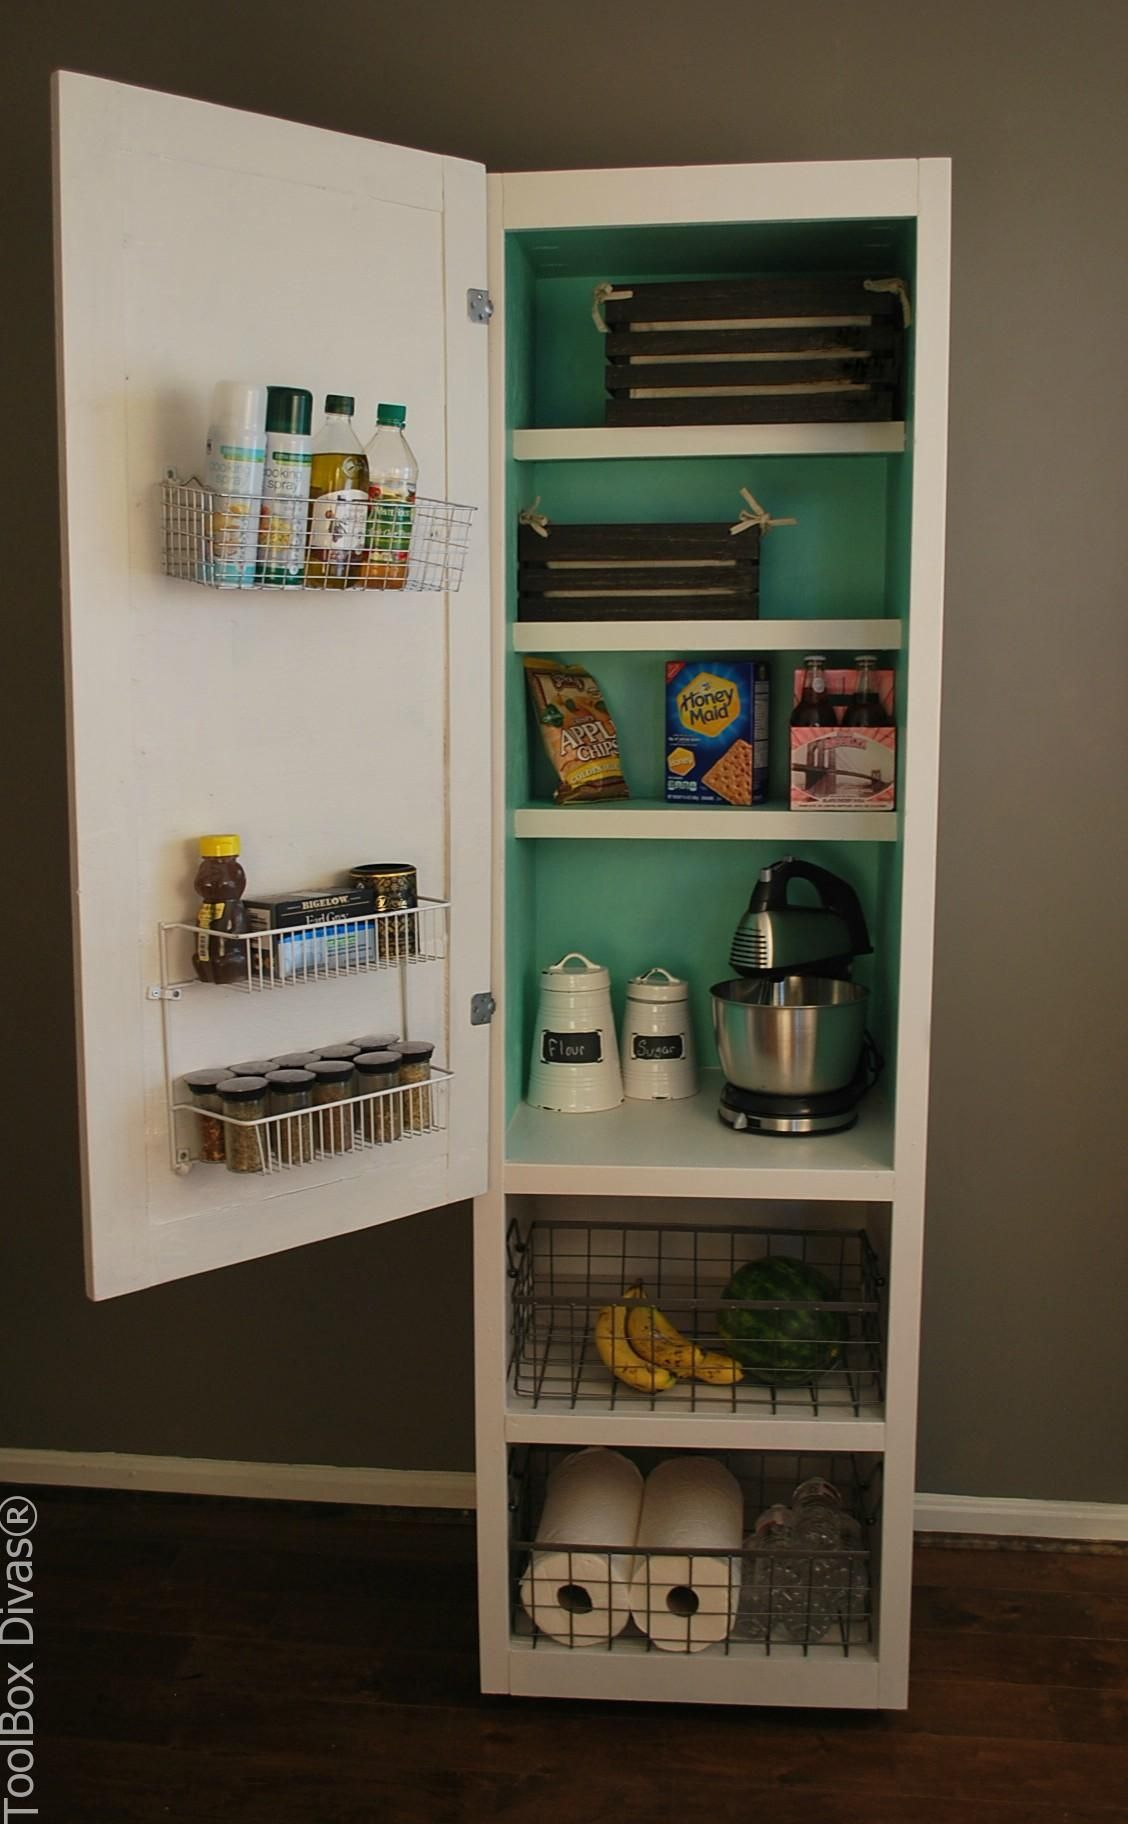 Diy Kitchen Pantry Cabinet Plans Sinks Undermount Mobile Sheds Pinterest Free Building For A Single Standing